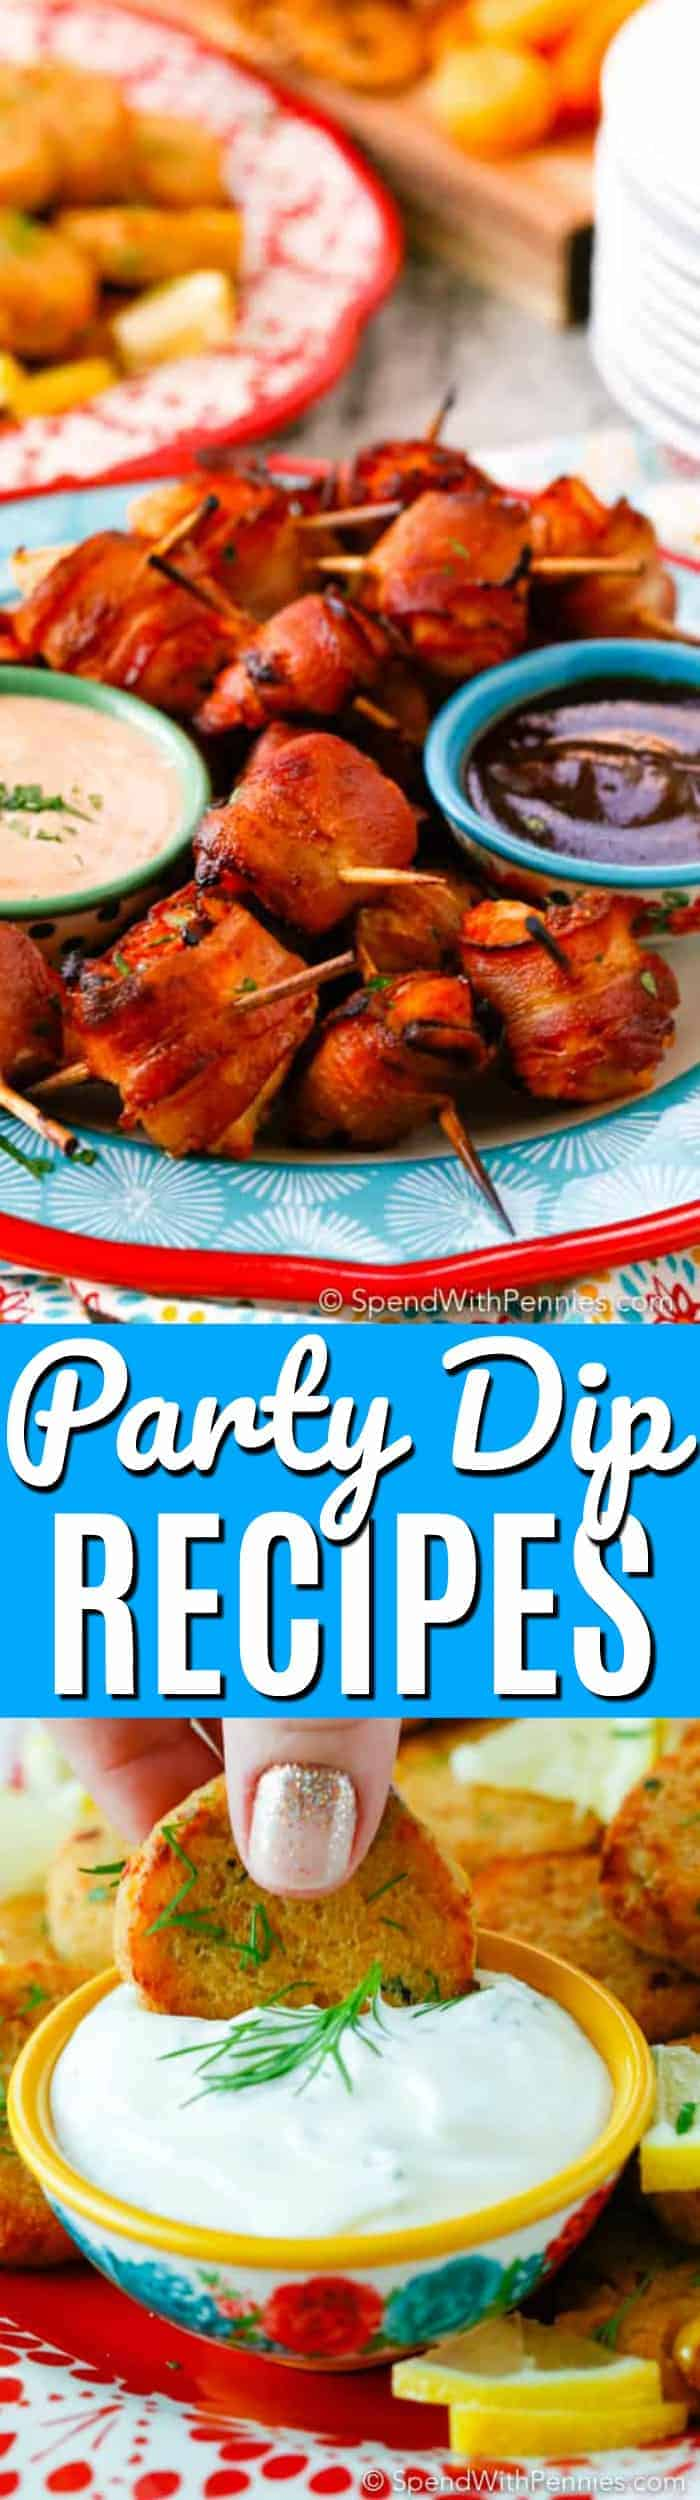 Easy Dip Recipes with a title